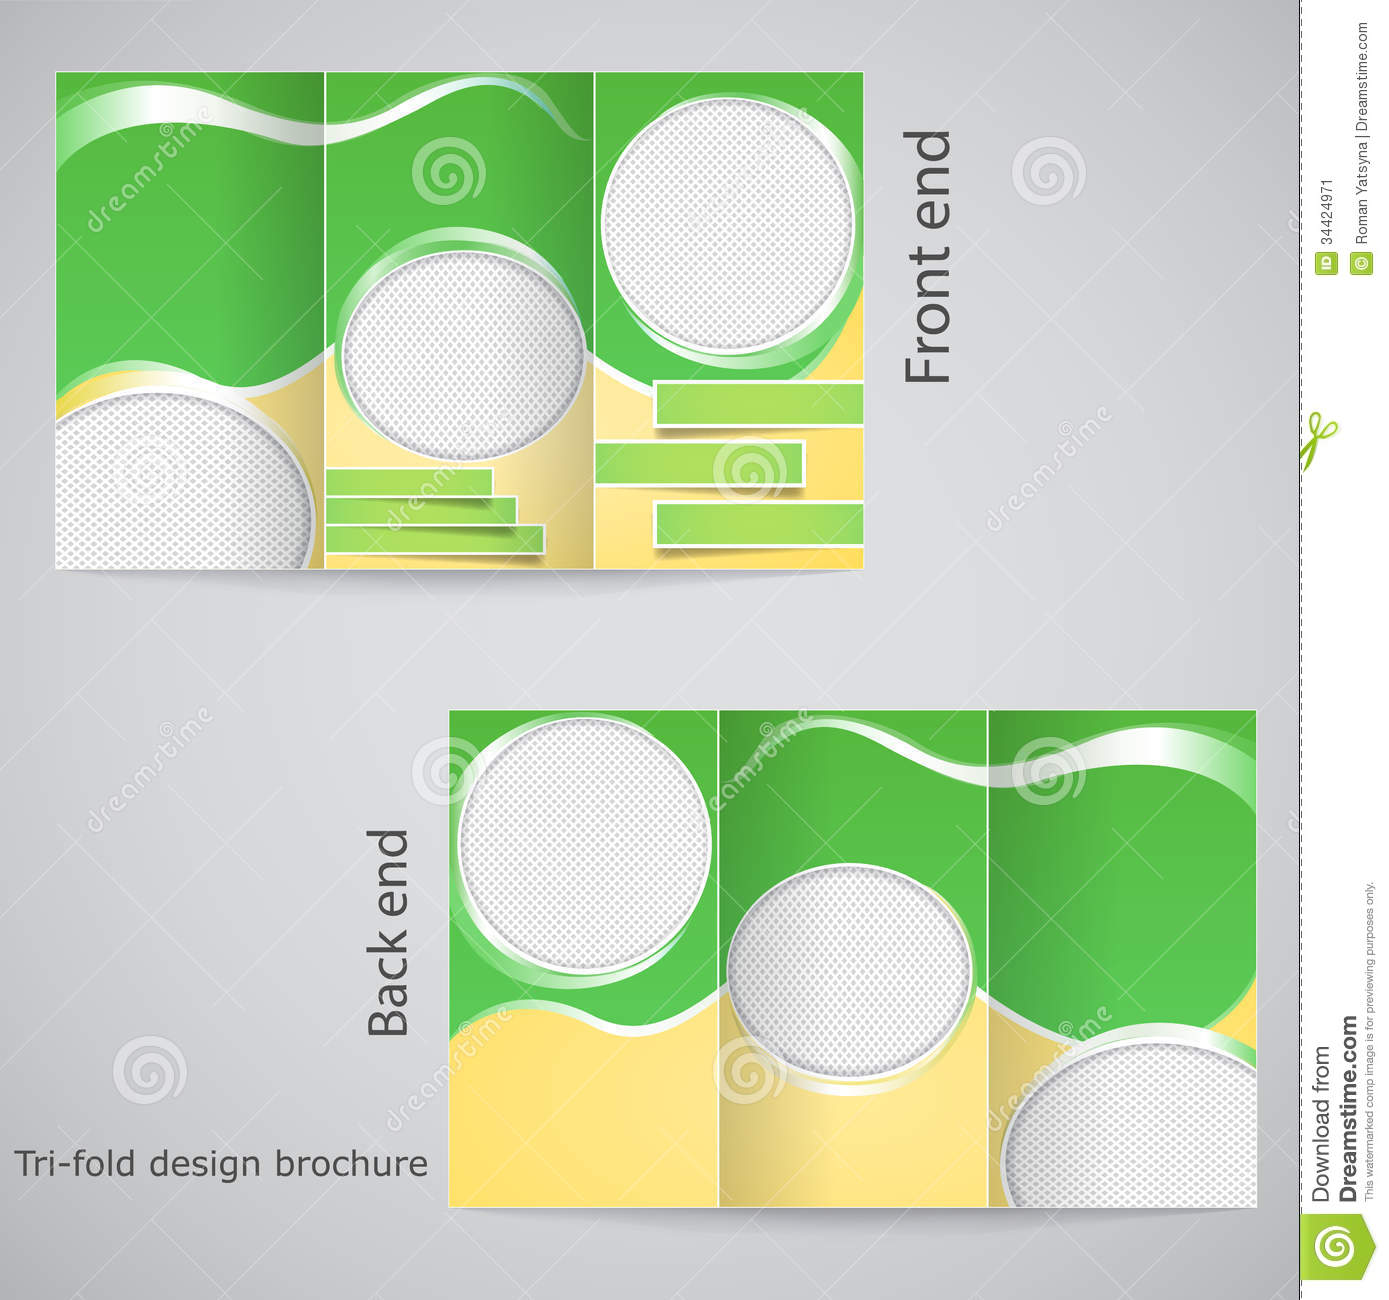 Tri fold brochure design stock vector illustration of for Trifold brochure template